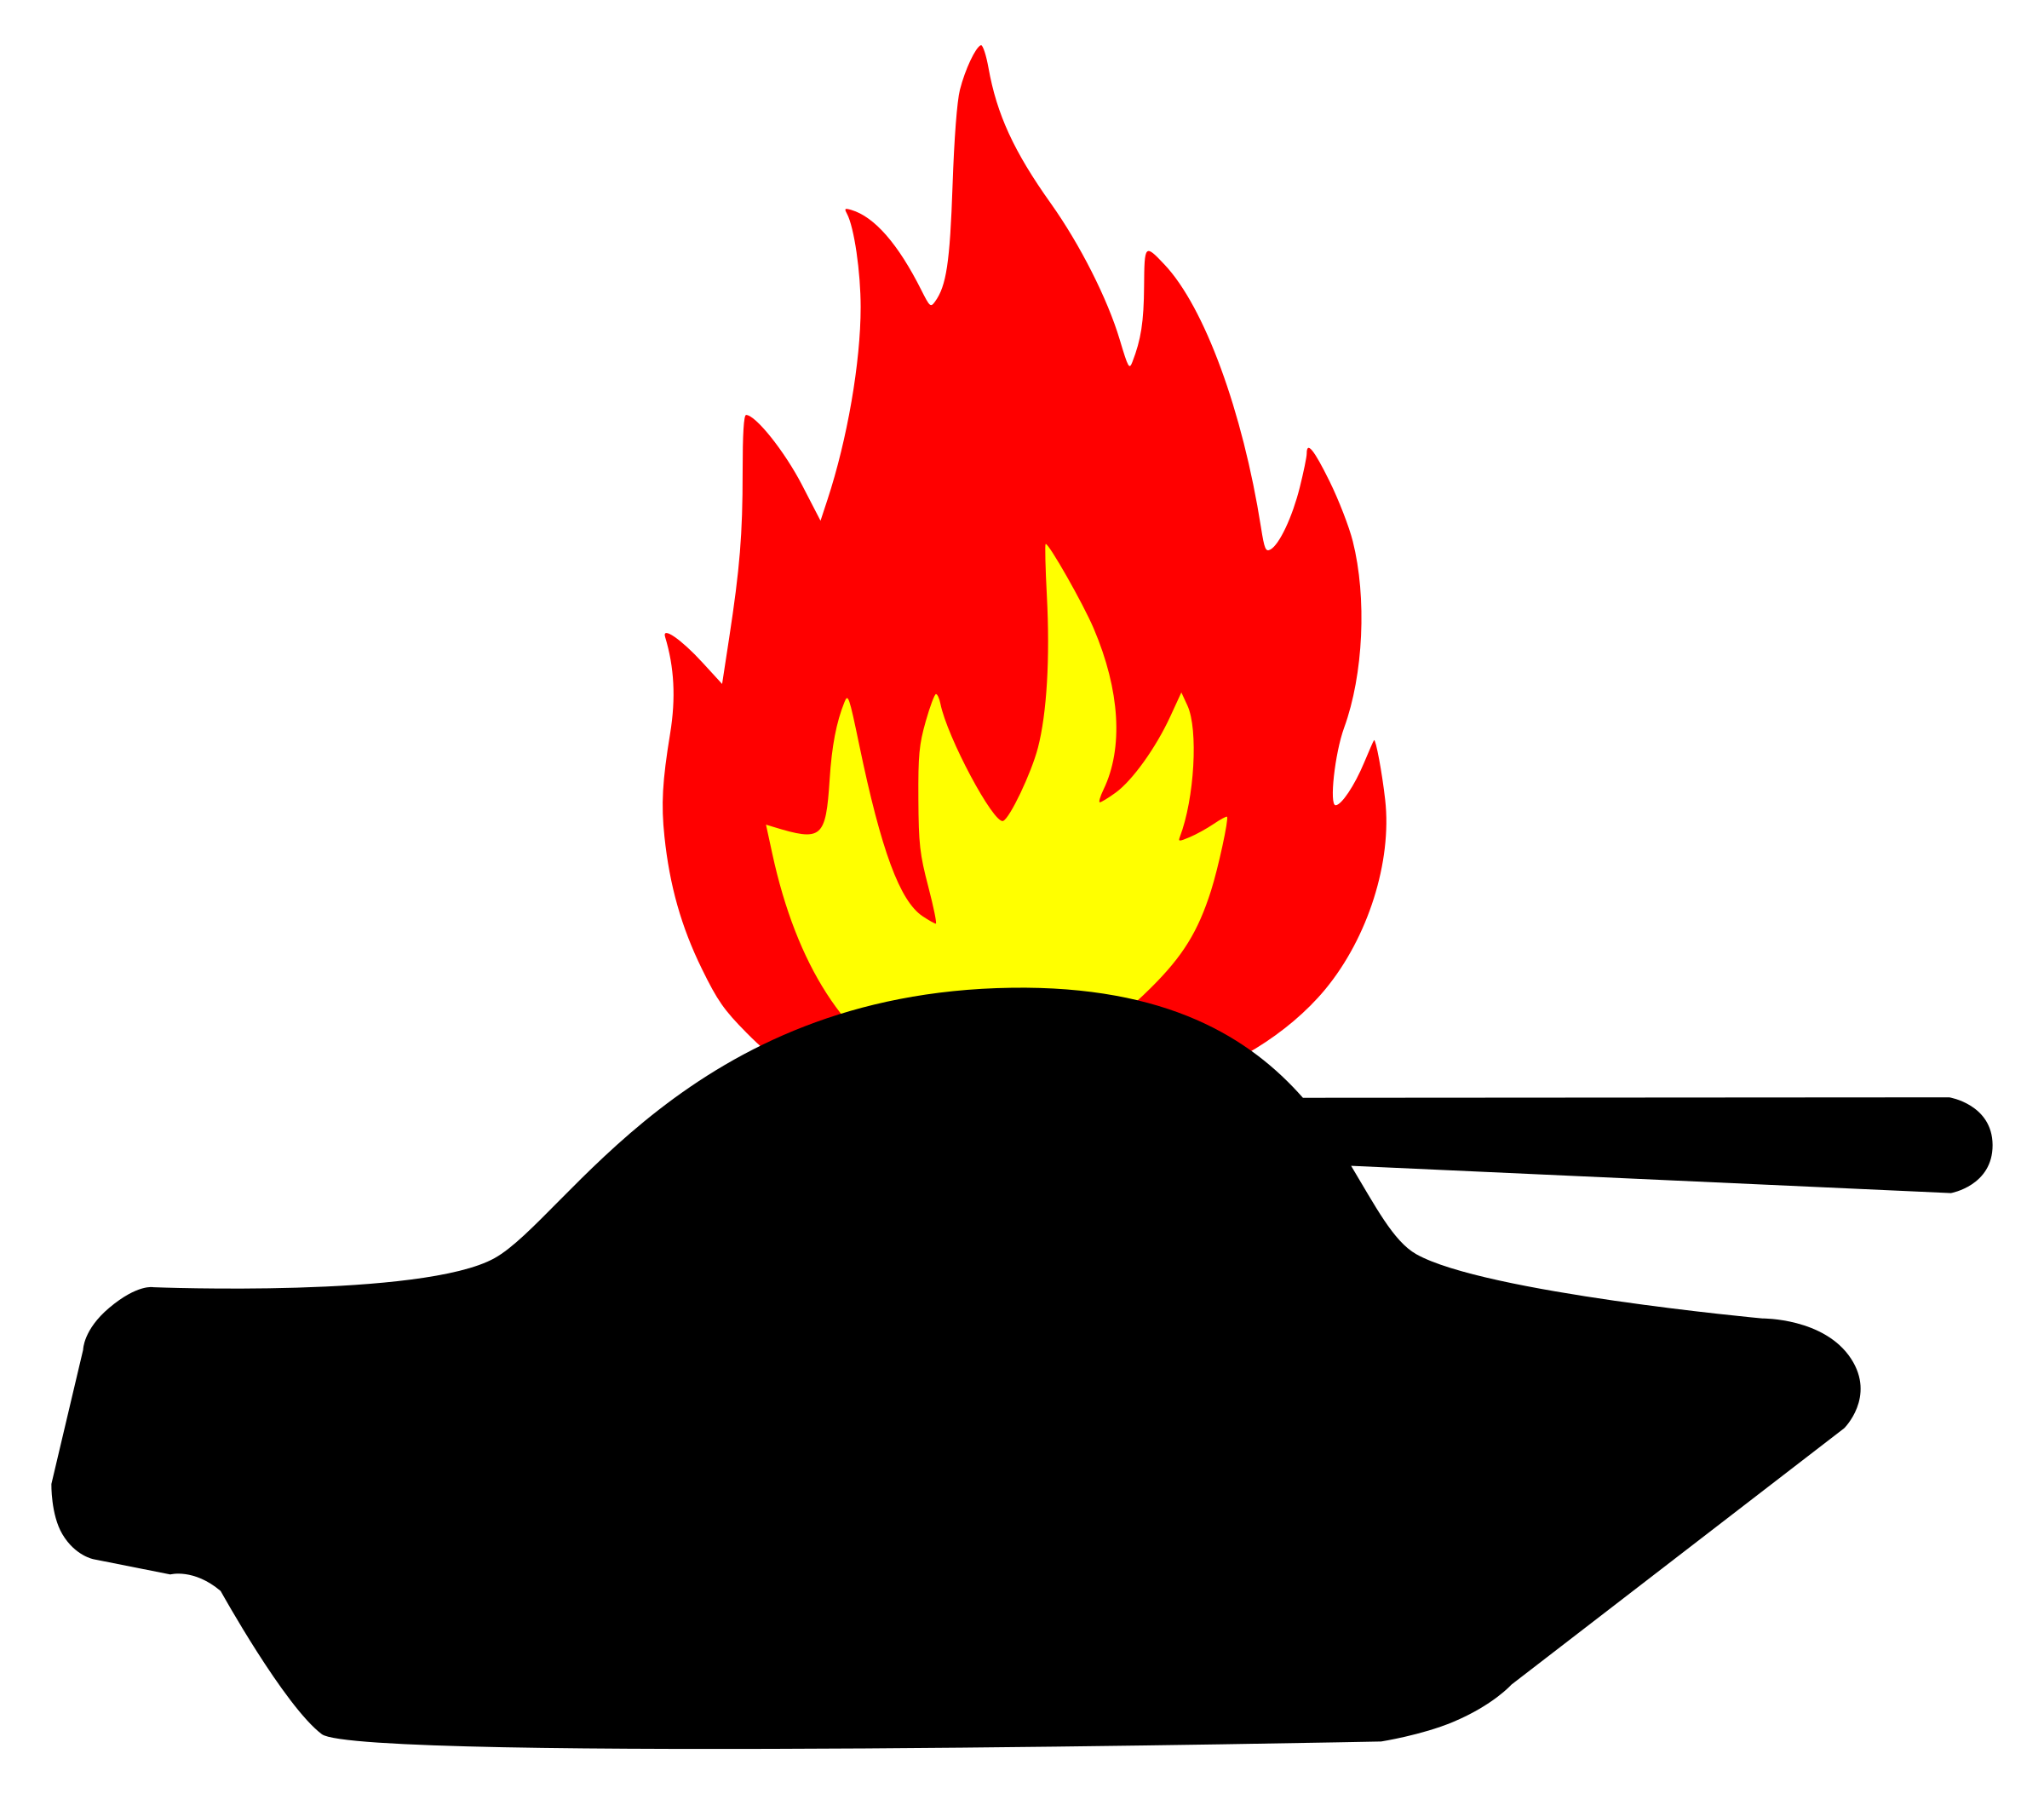 Peace clipart imperialism. Burning tank big image